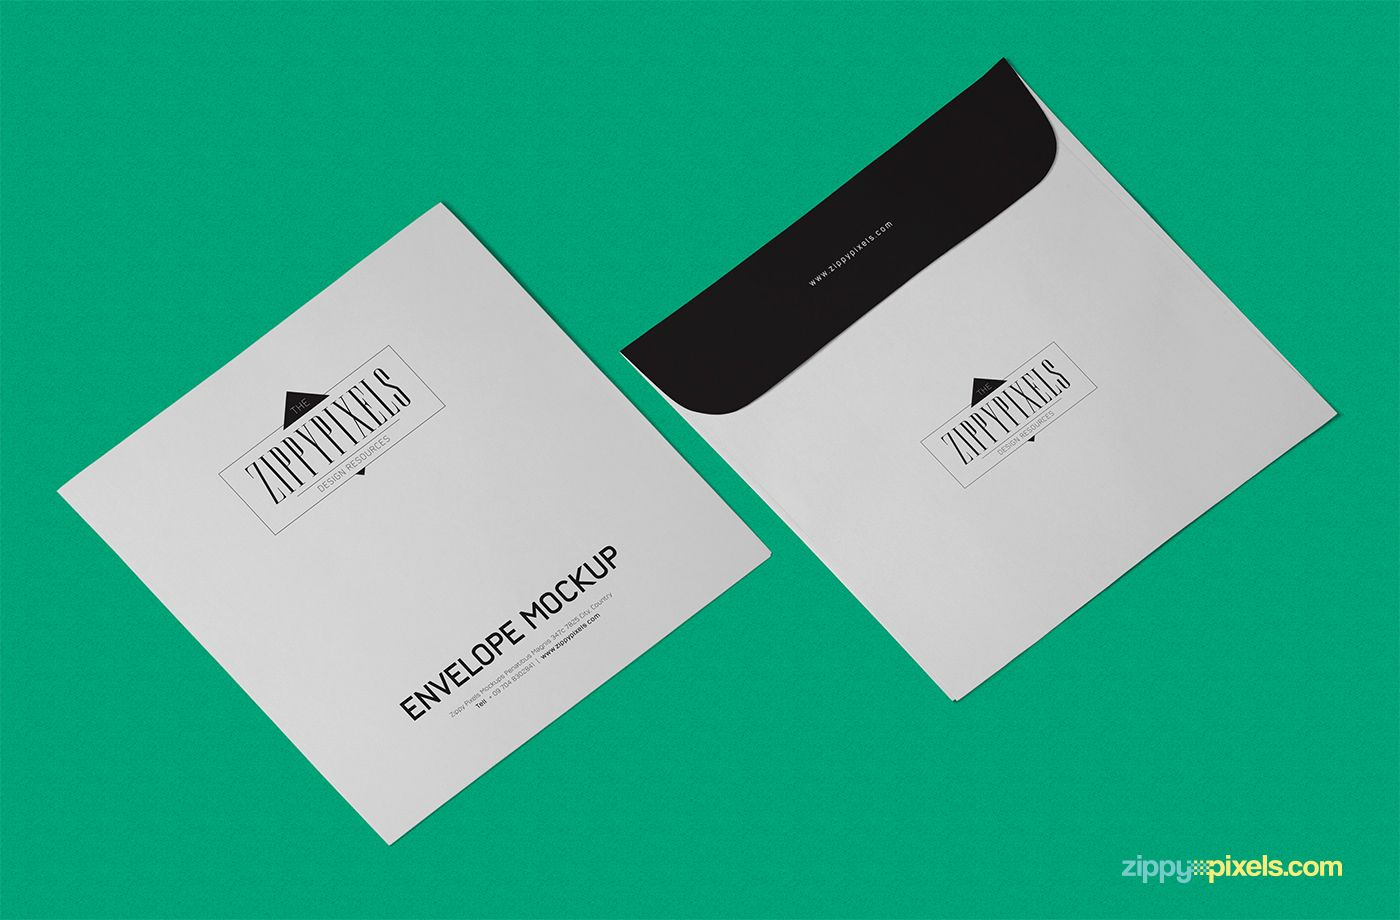 Free Envelope Mockup PSD In Isometric View on Behance   mockup ...